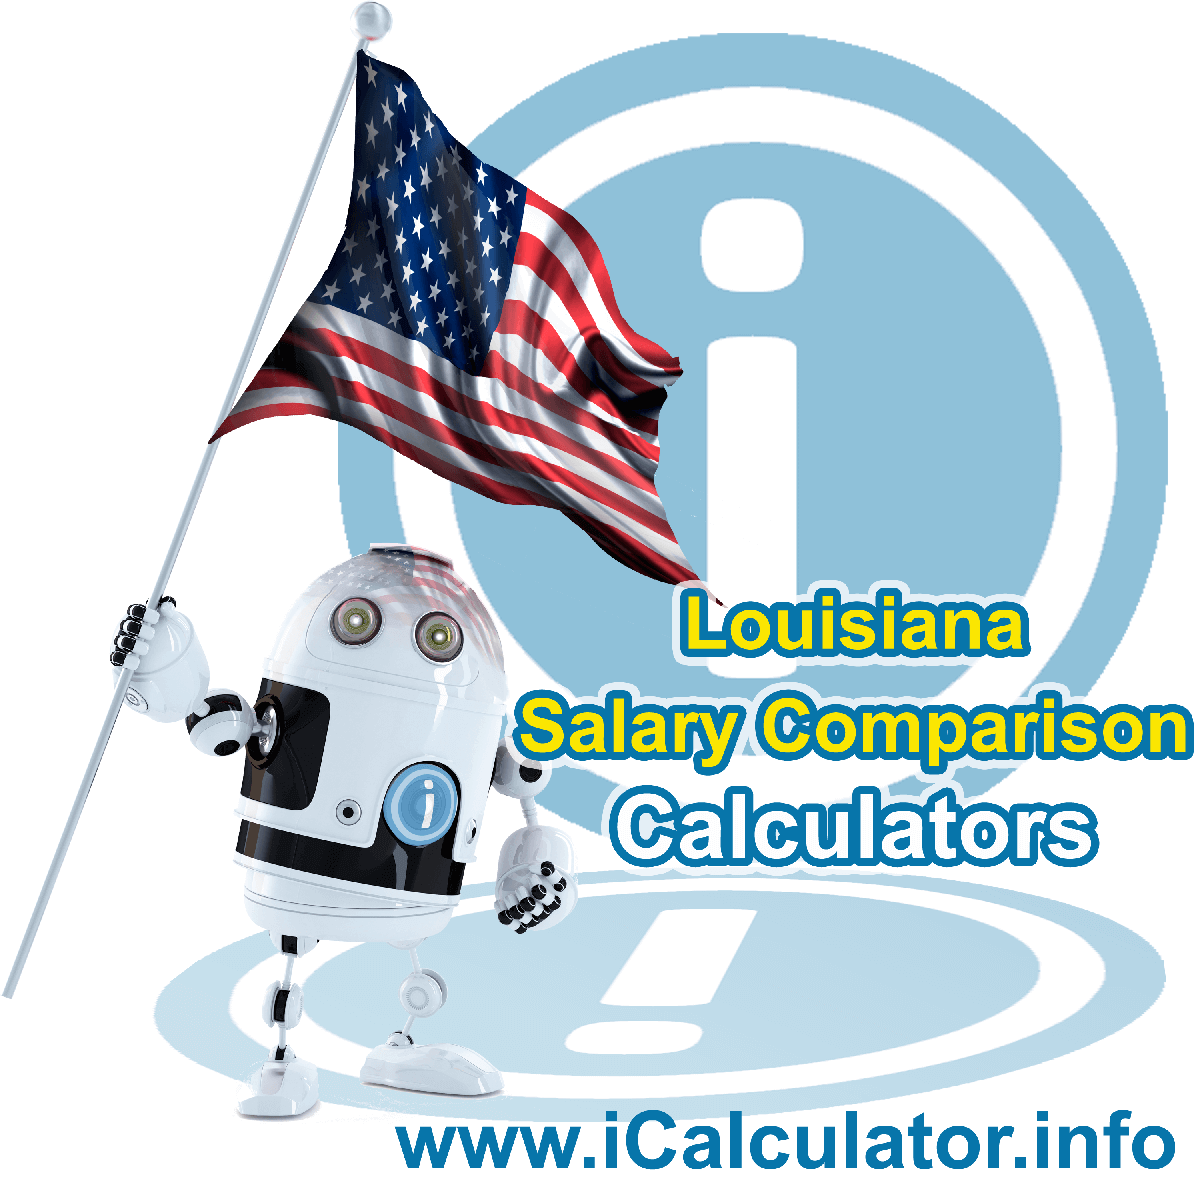 Louisiana Salary Comparison Calculator 2020 | iCalculator | The Louisiana Salary Comparison Calculator allows you to quickly calculate and compare upto 6 salaries in Louisiana or between other states for the 2020 tax year and historical tax years. Its an excellent tool for jobseekers, pay raise comparison and comparison of salaries between different US States